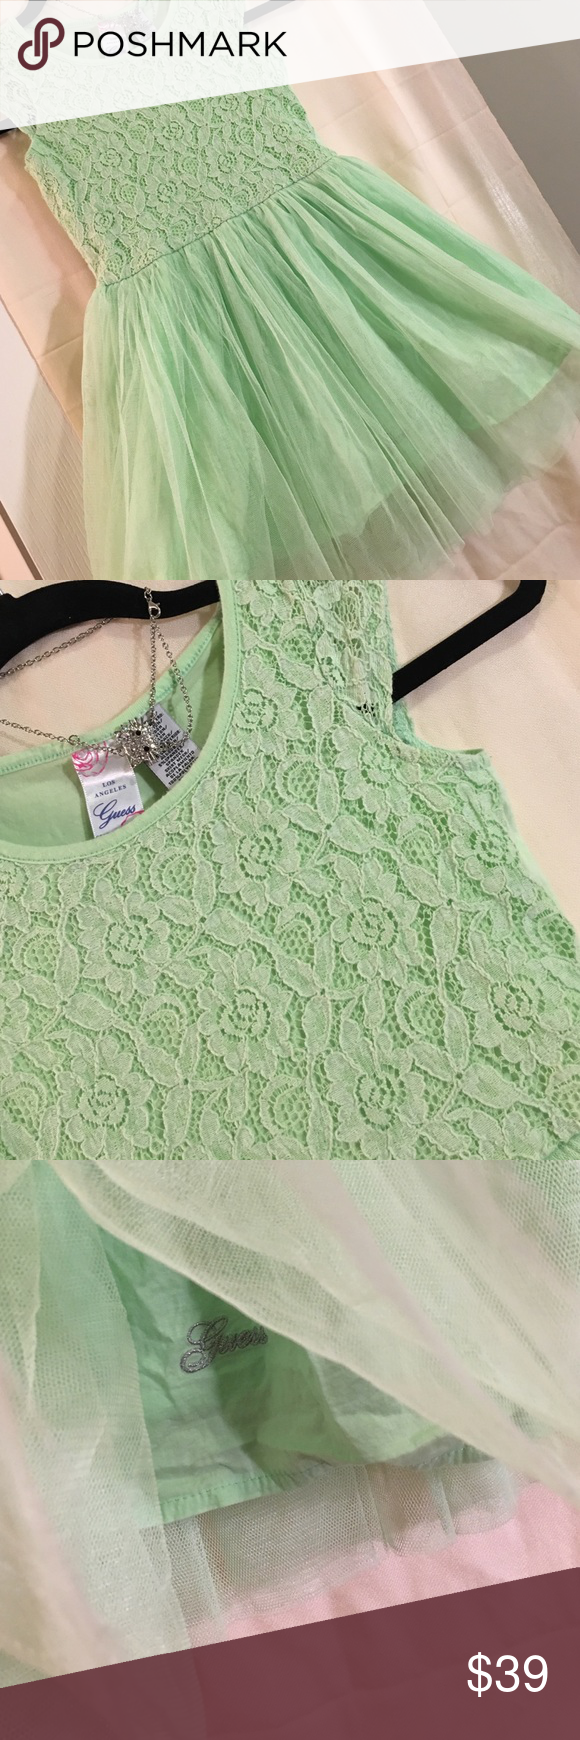 Precious, light green dress, sheer delight! A super happy dress, the princess is celebrating today! Pullover style, short sleeves, lace and tulle, totally awesome! Guess Dresses